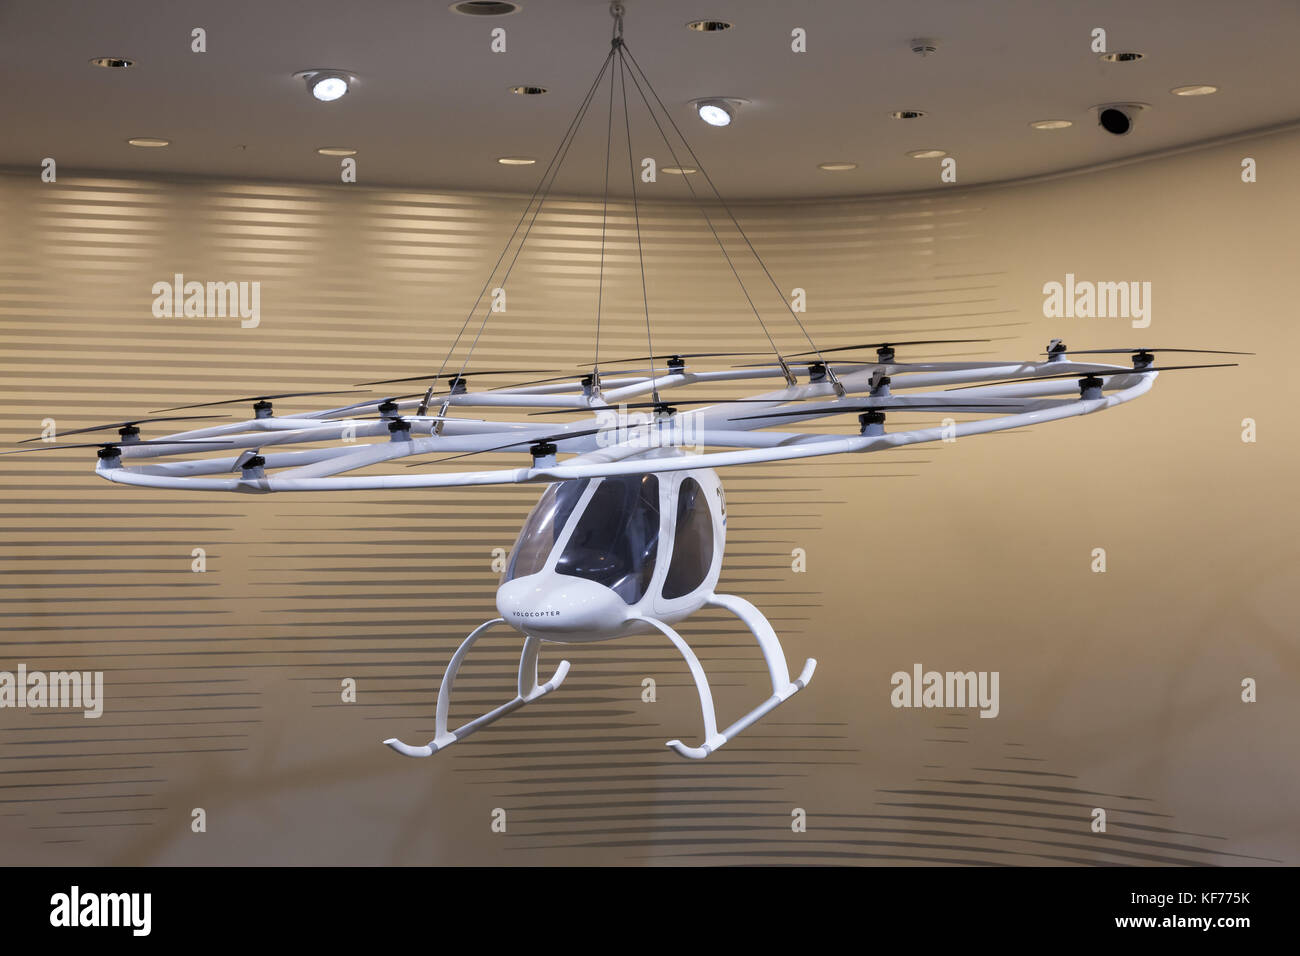 Frankfurt, Germany - Sep 20, 2017: Volocopter - an  electric multirotor helicopter from a german company e-volo. - Stock Image